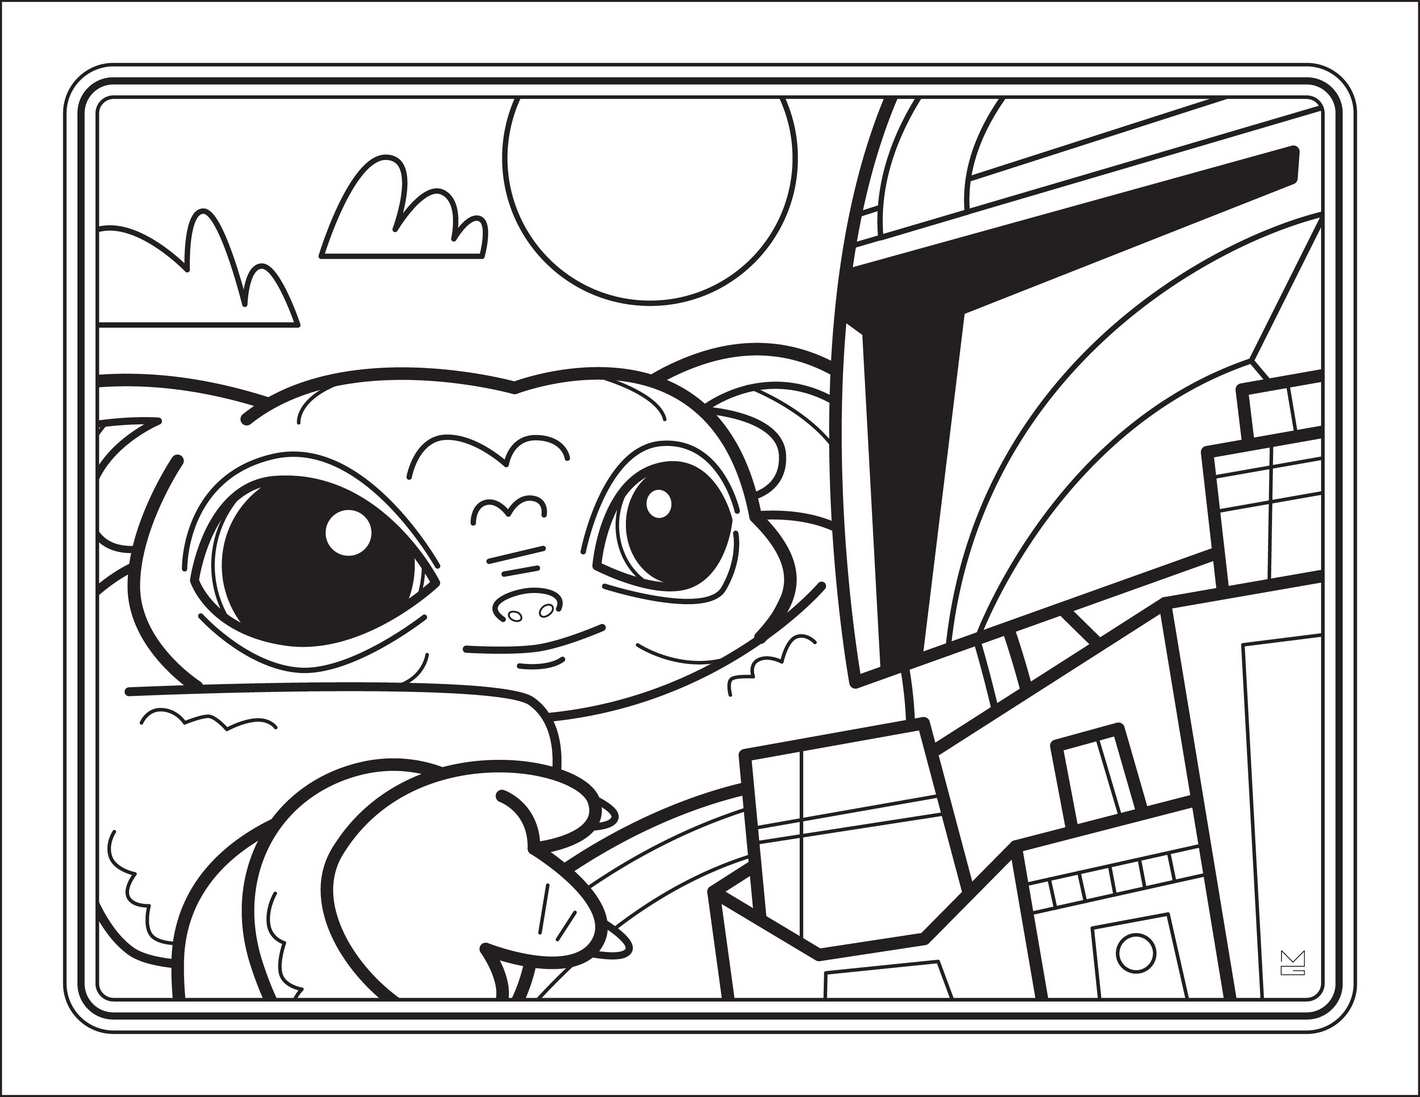 You Can Get A Free Downloadable Baby Yoda Coloring Book Chip And Company